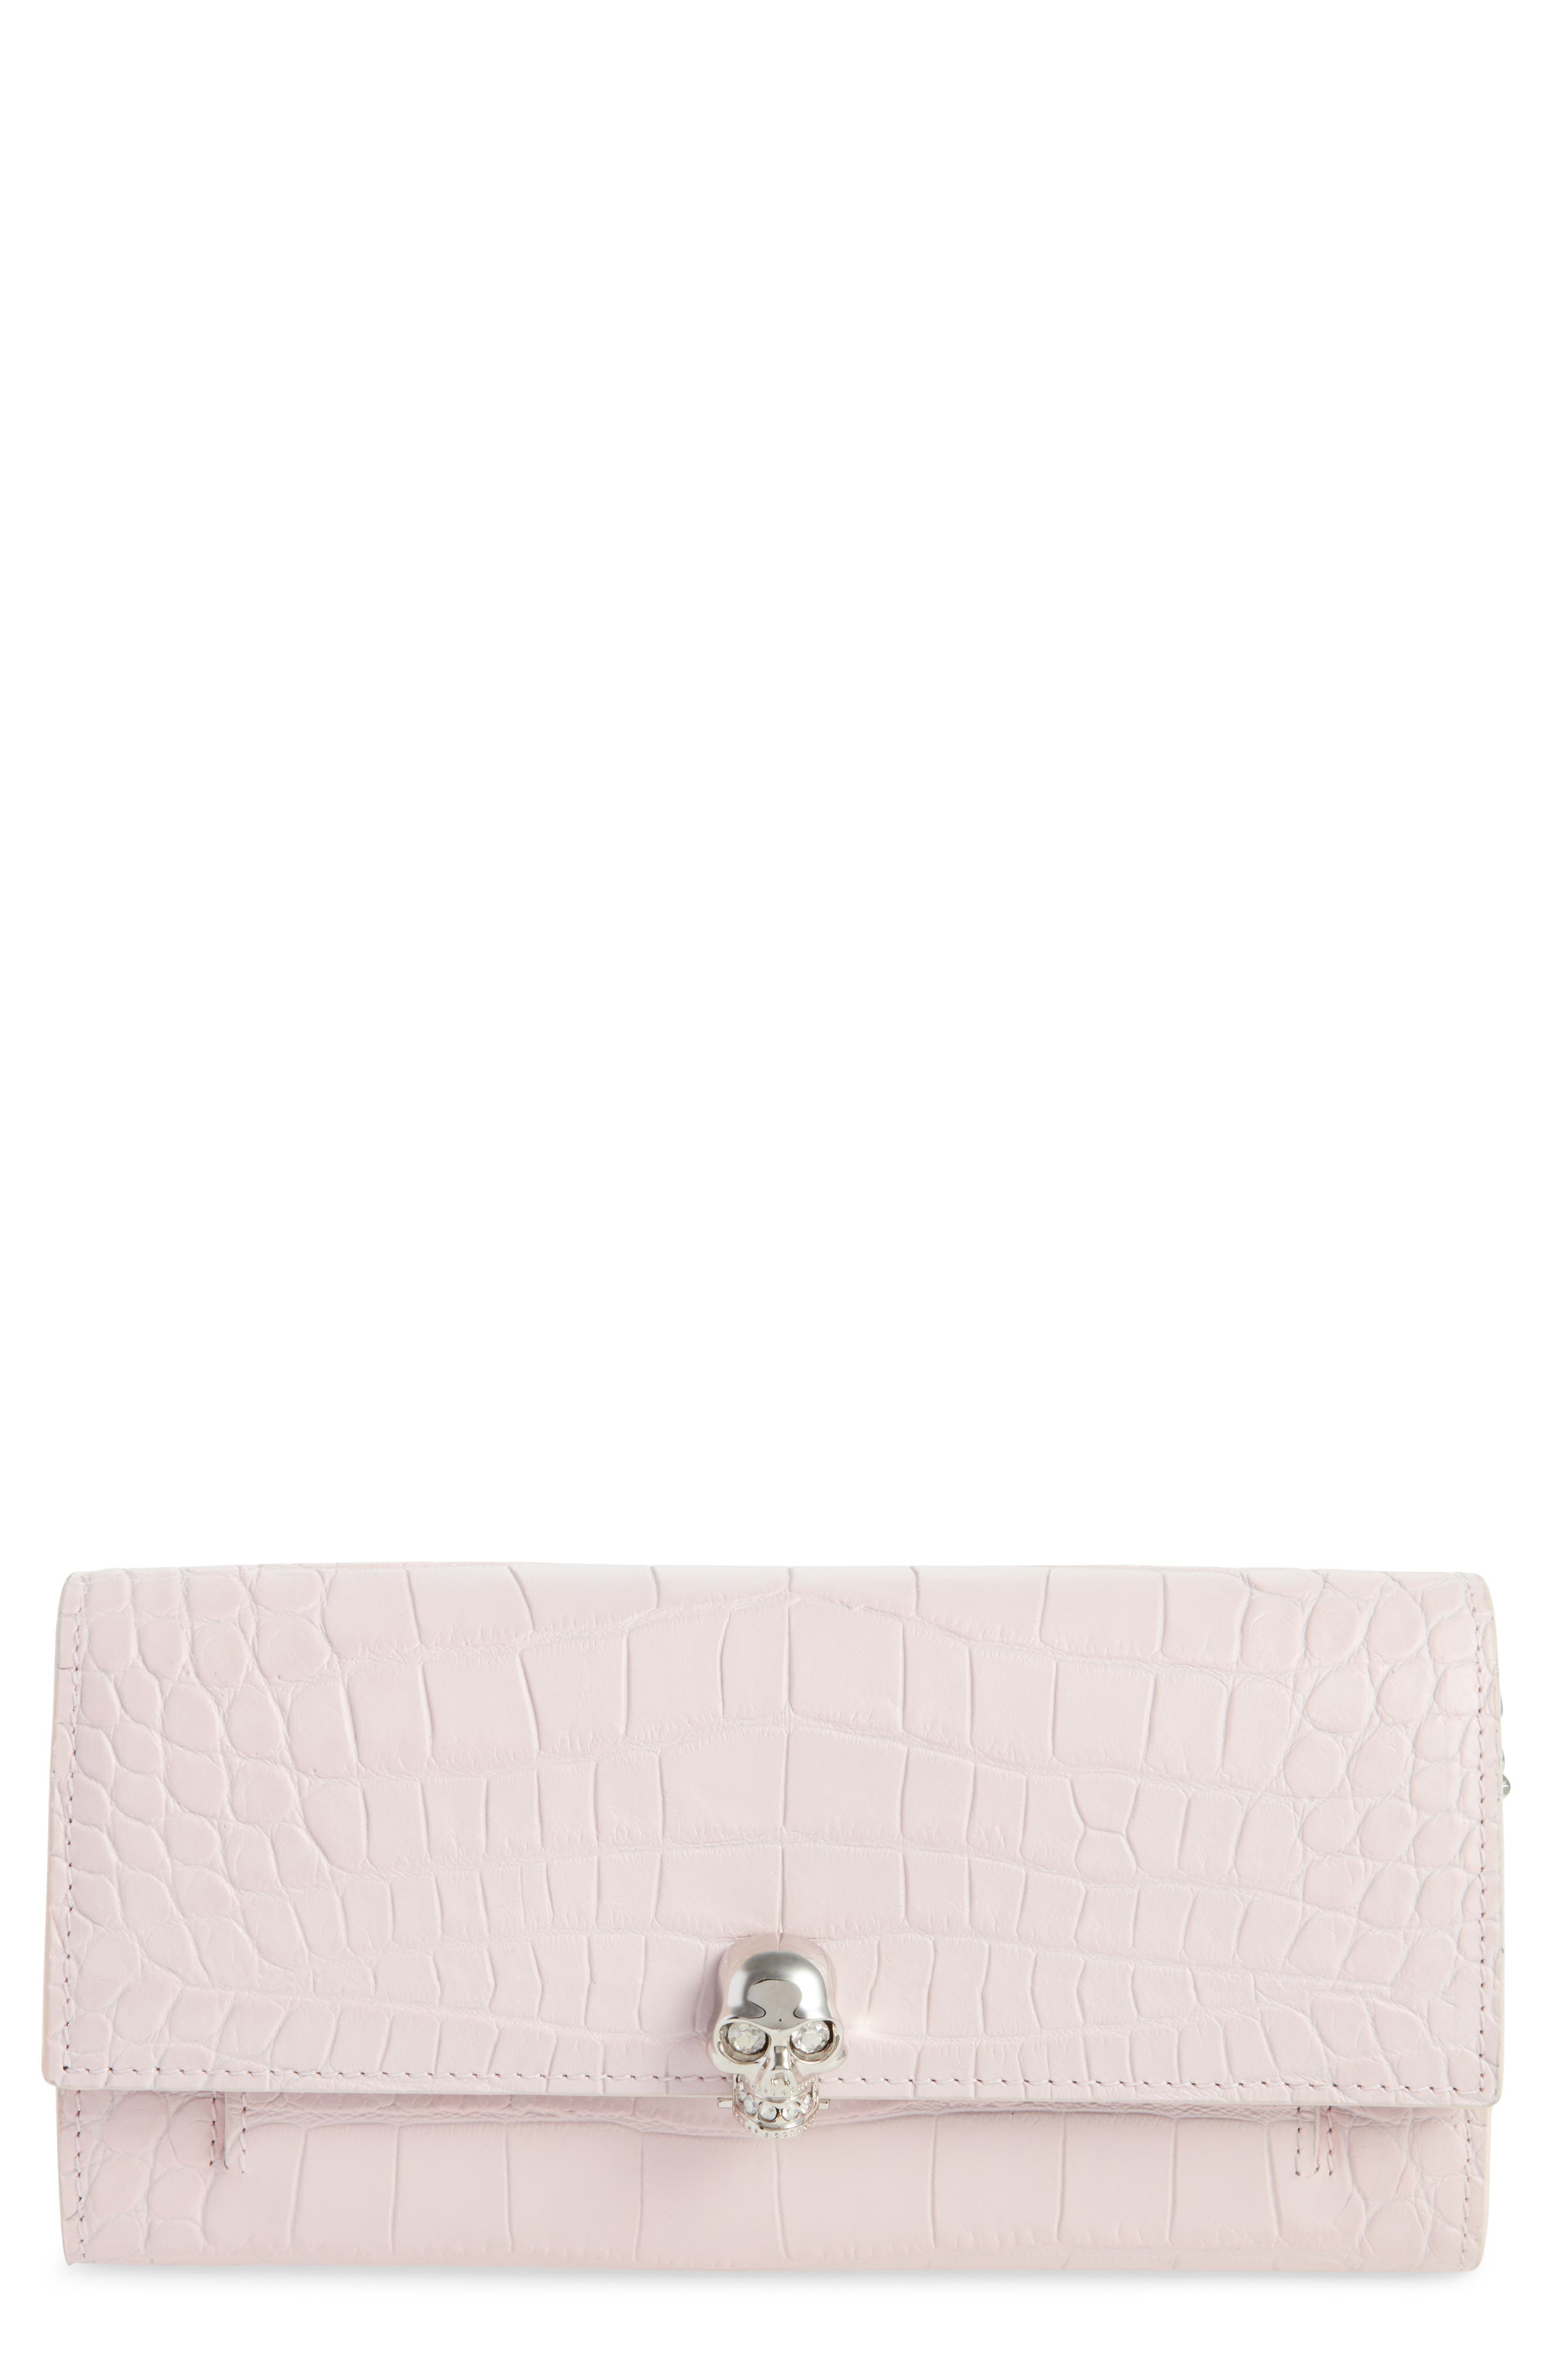 Main Image - Alexander McQueen Skull Croc Embossed Leather Wallet on a Chain